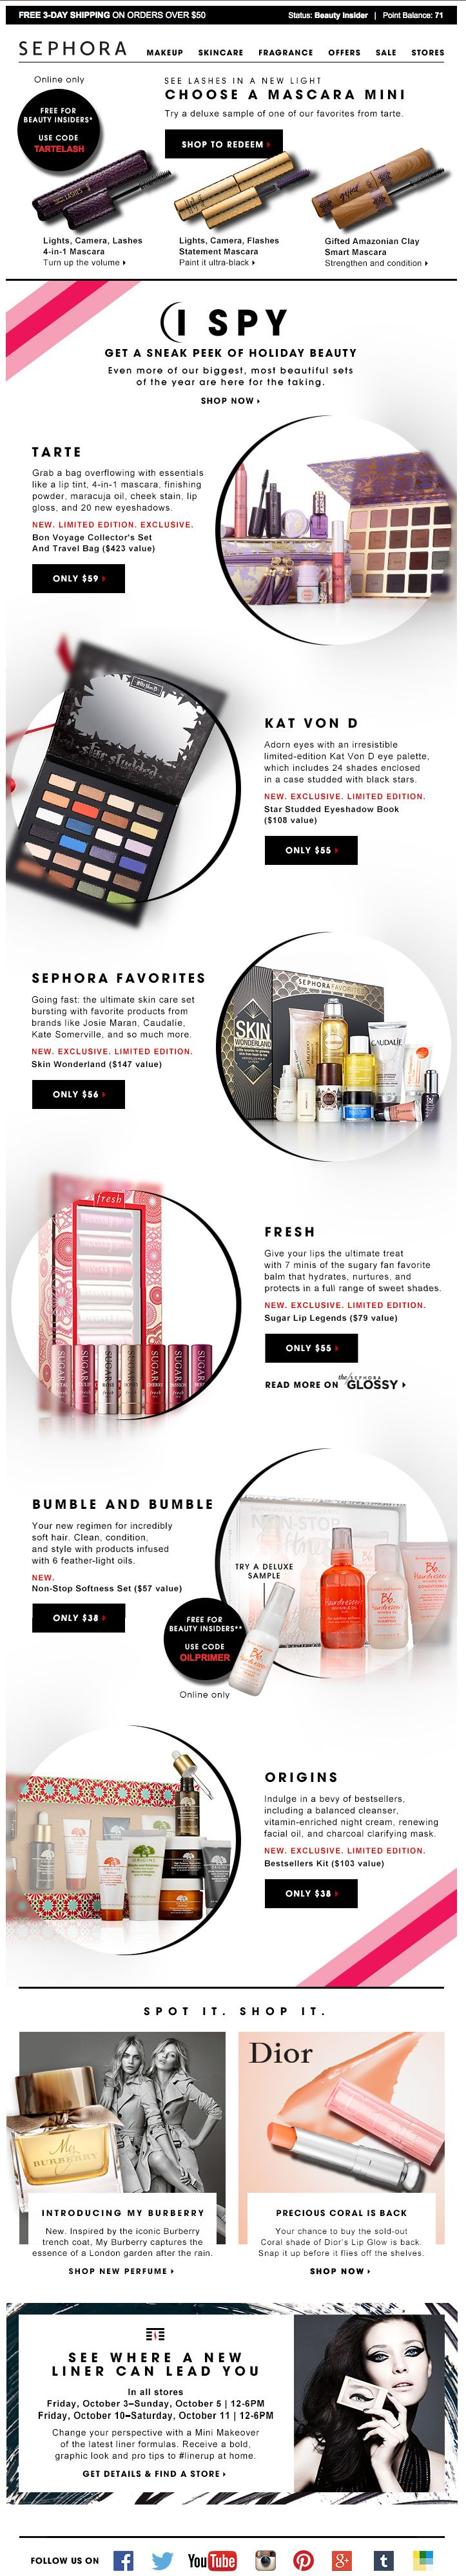 """Sephora, """"Holiday sets are here + a deluxe tarte mini"""" 10/1/14"""